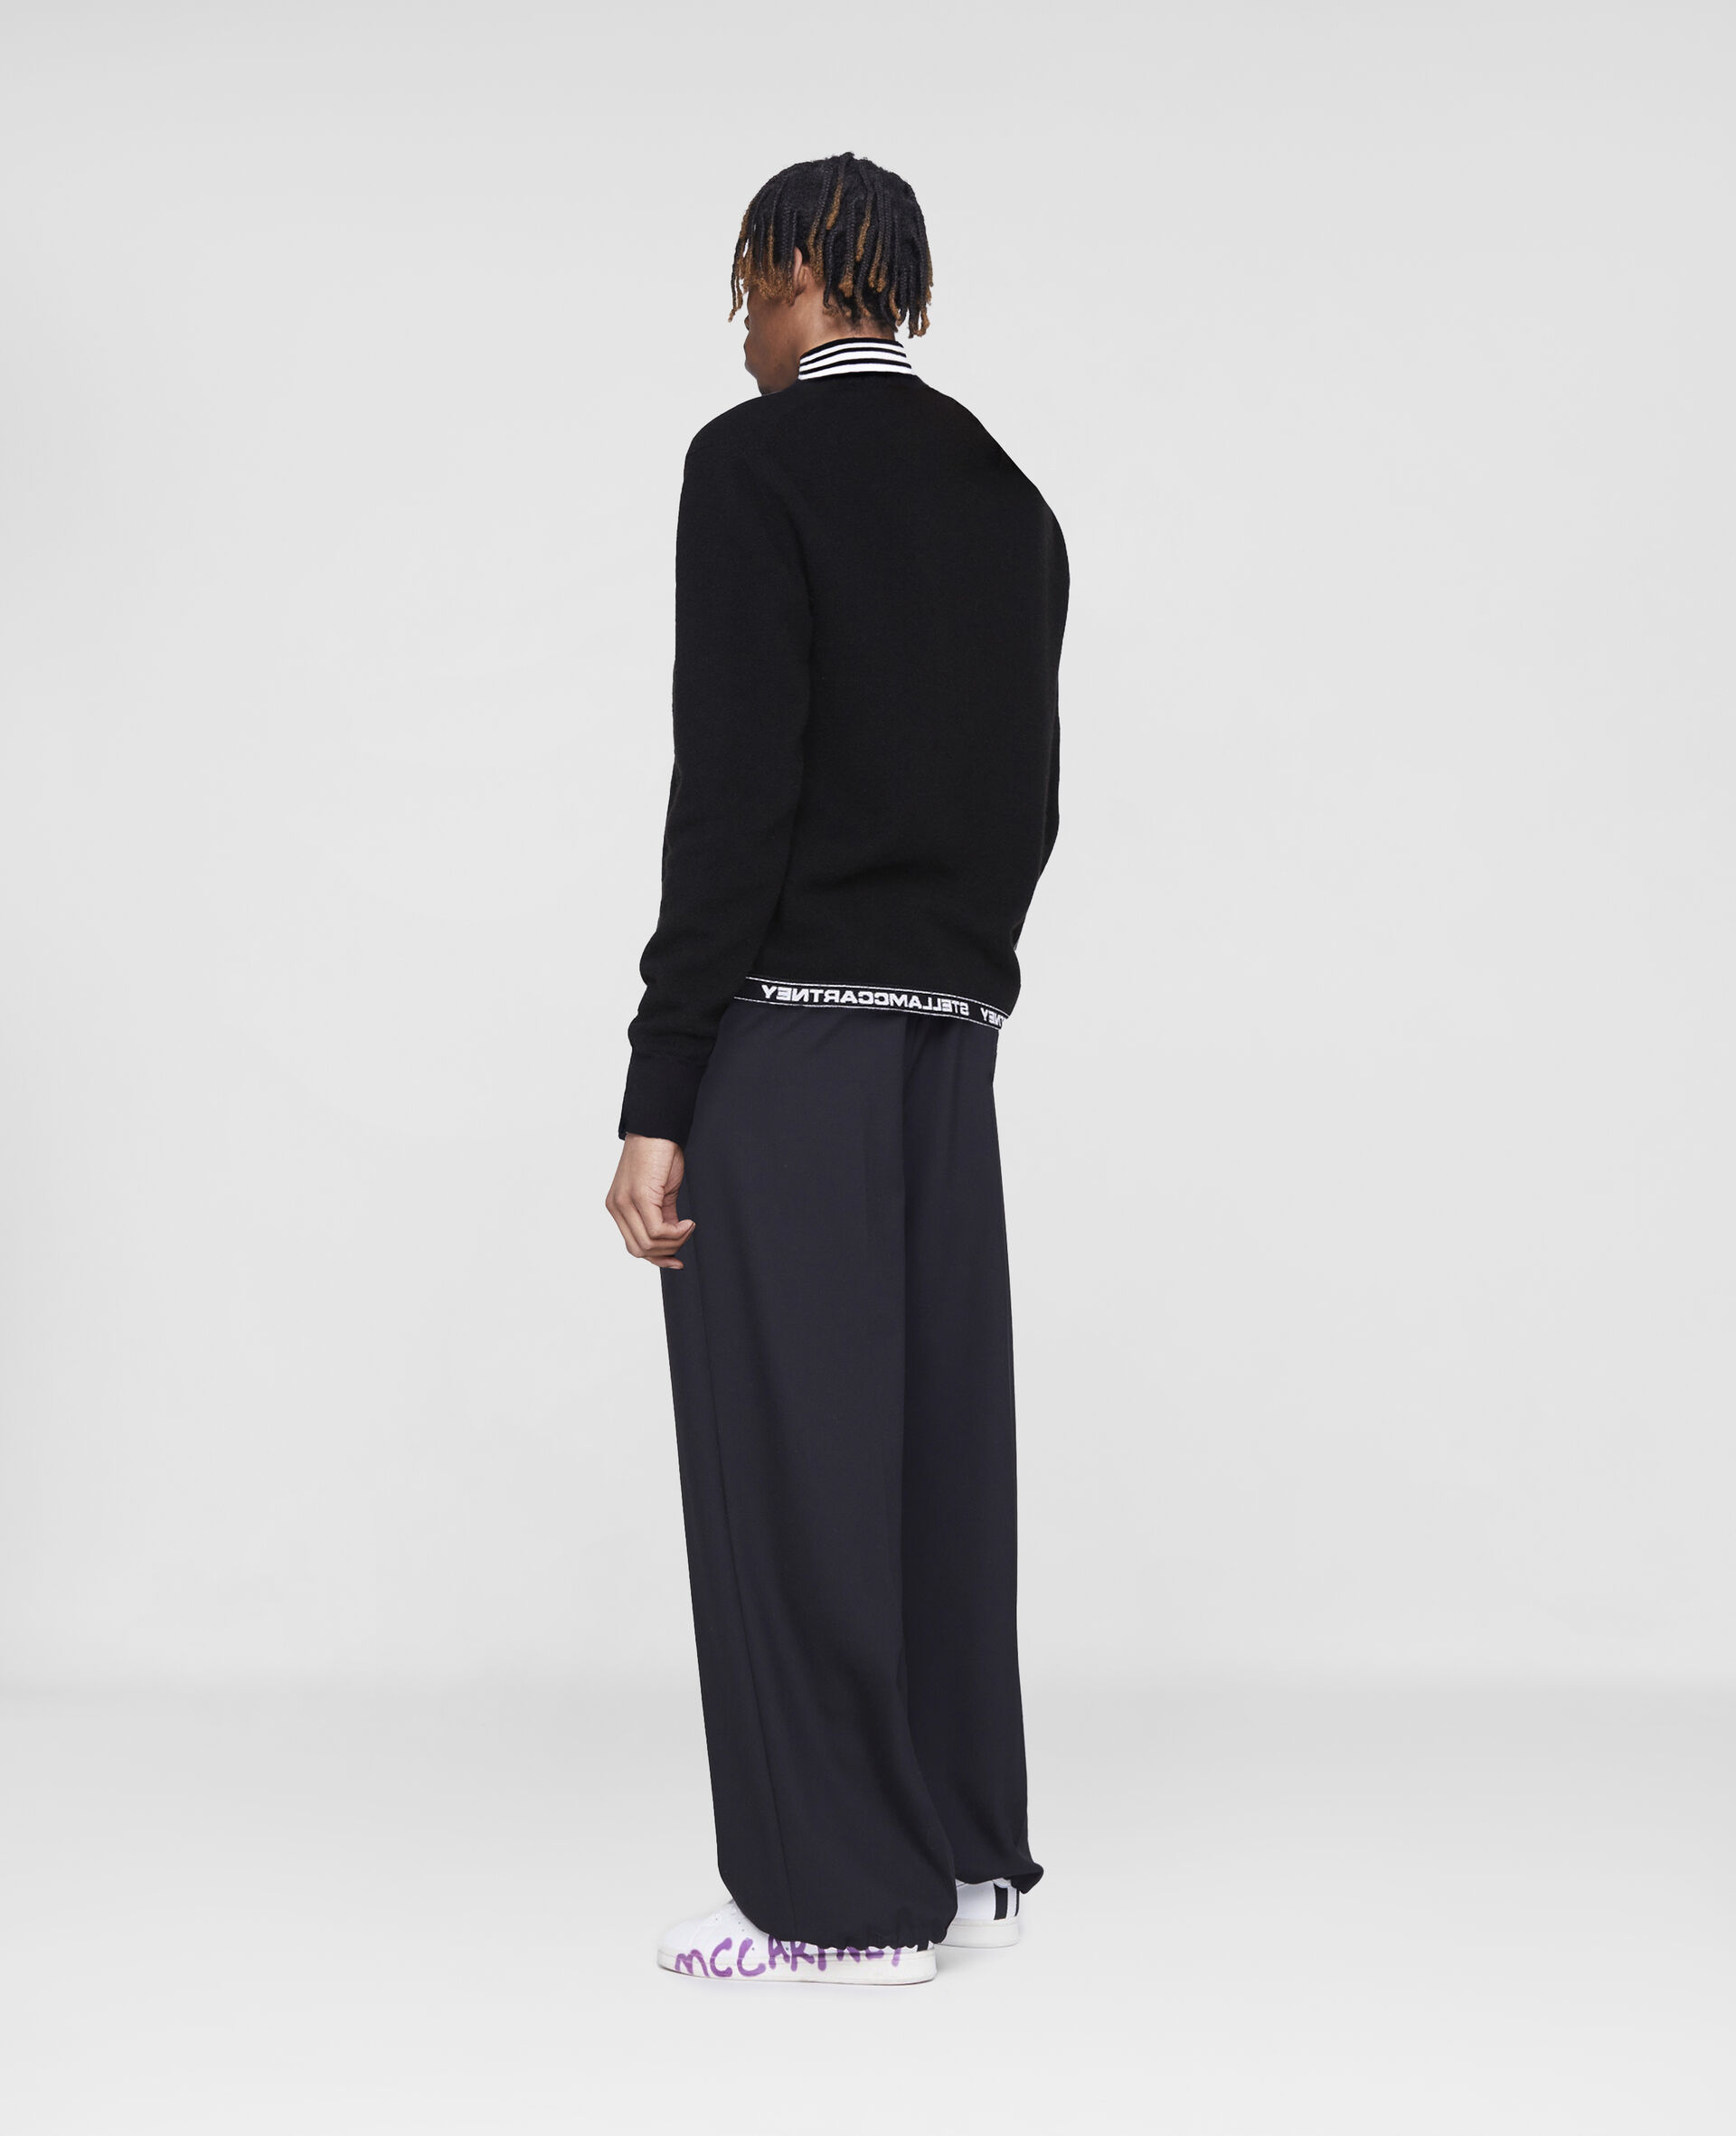 Stella Logo Tailored Trousers -Black-large image number 2